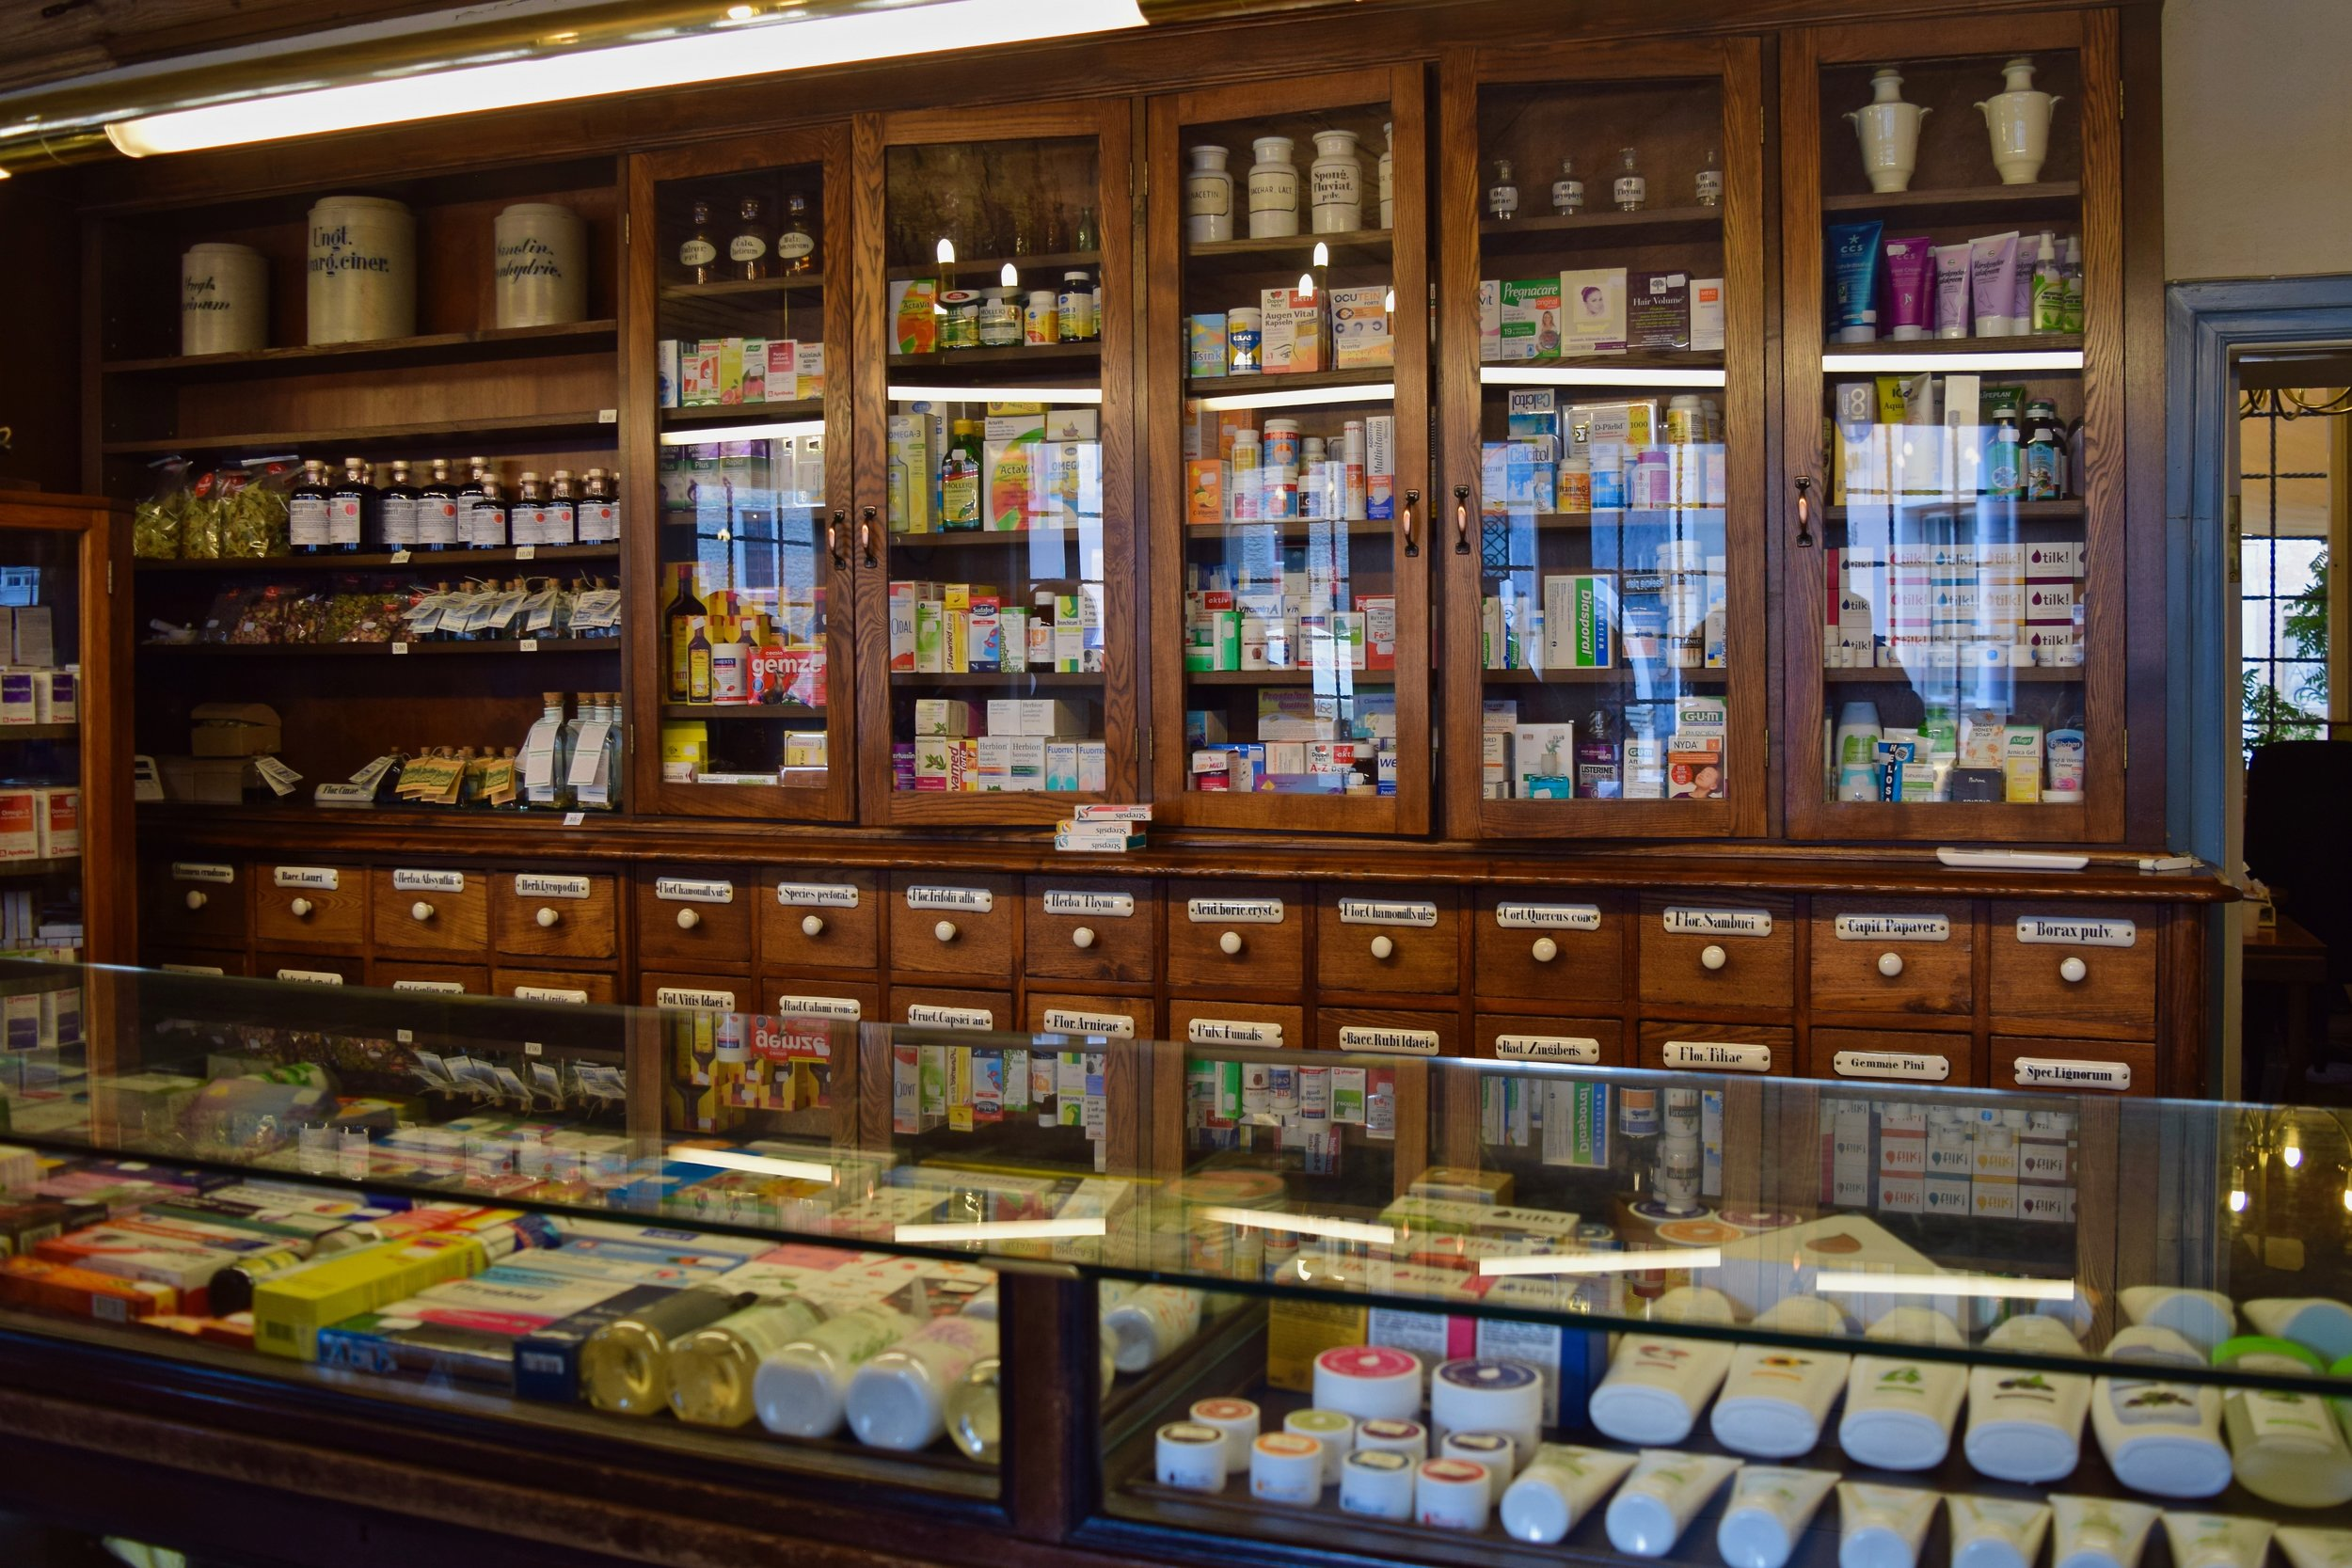 Interior of the Pharmacy